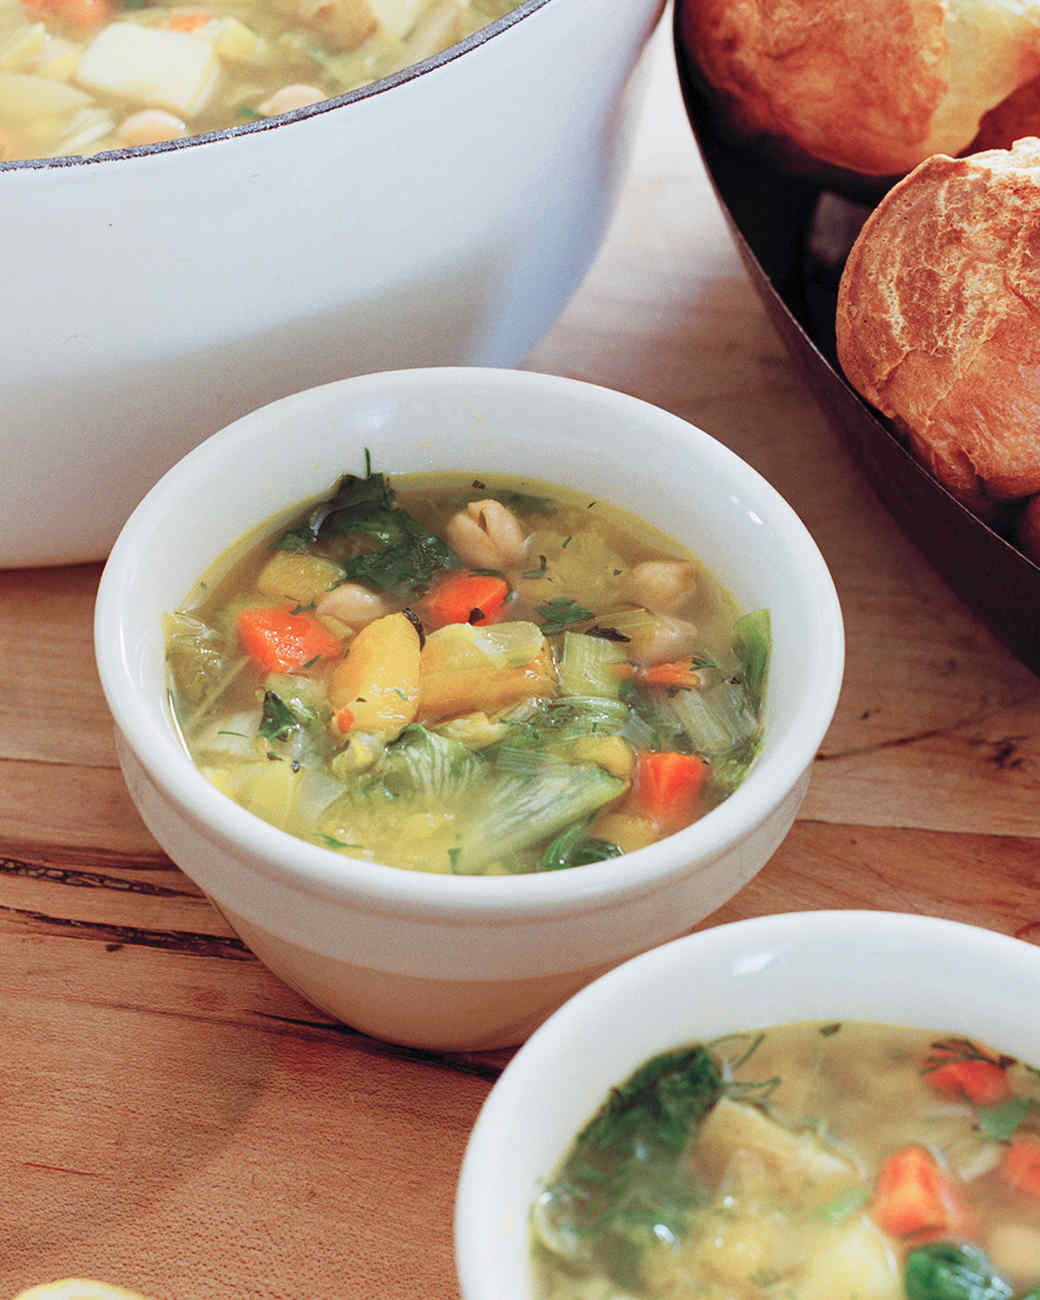 Easy Vegetable Soup: Easy Vegetable Soup Recipes That Are Ultra-Satisfying